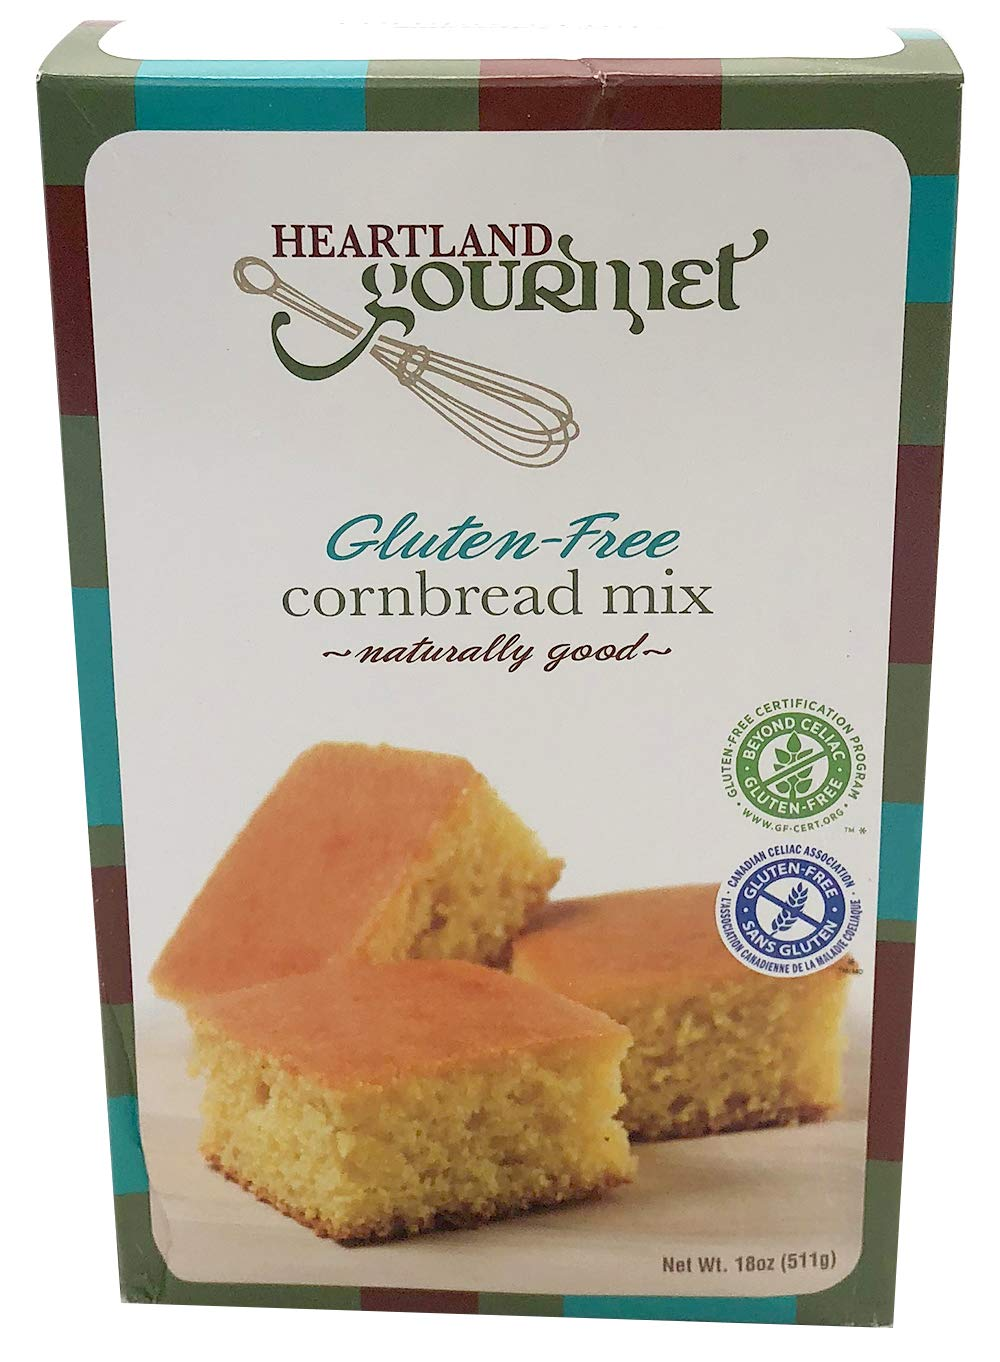 Heartland Gourmet Gluten Free Cornbread Mix - Buttery and Chewy- Certified Gluten Free Ingredients - All Purpose - Safe for Celiac Diet by Heartland Gourmet